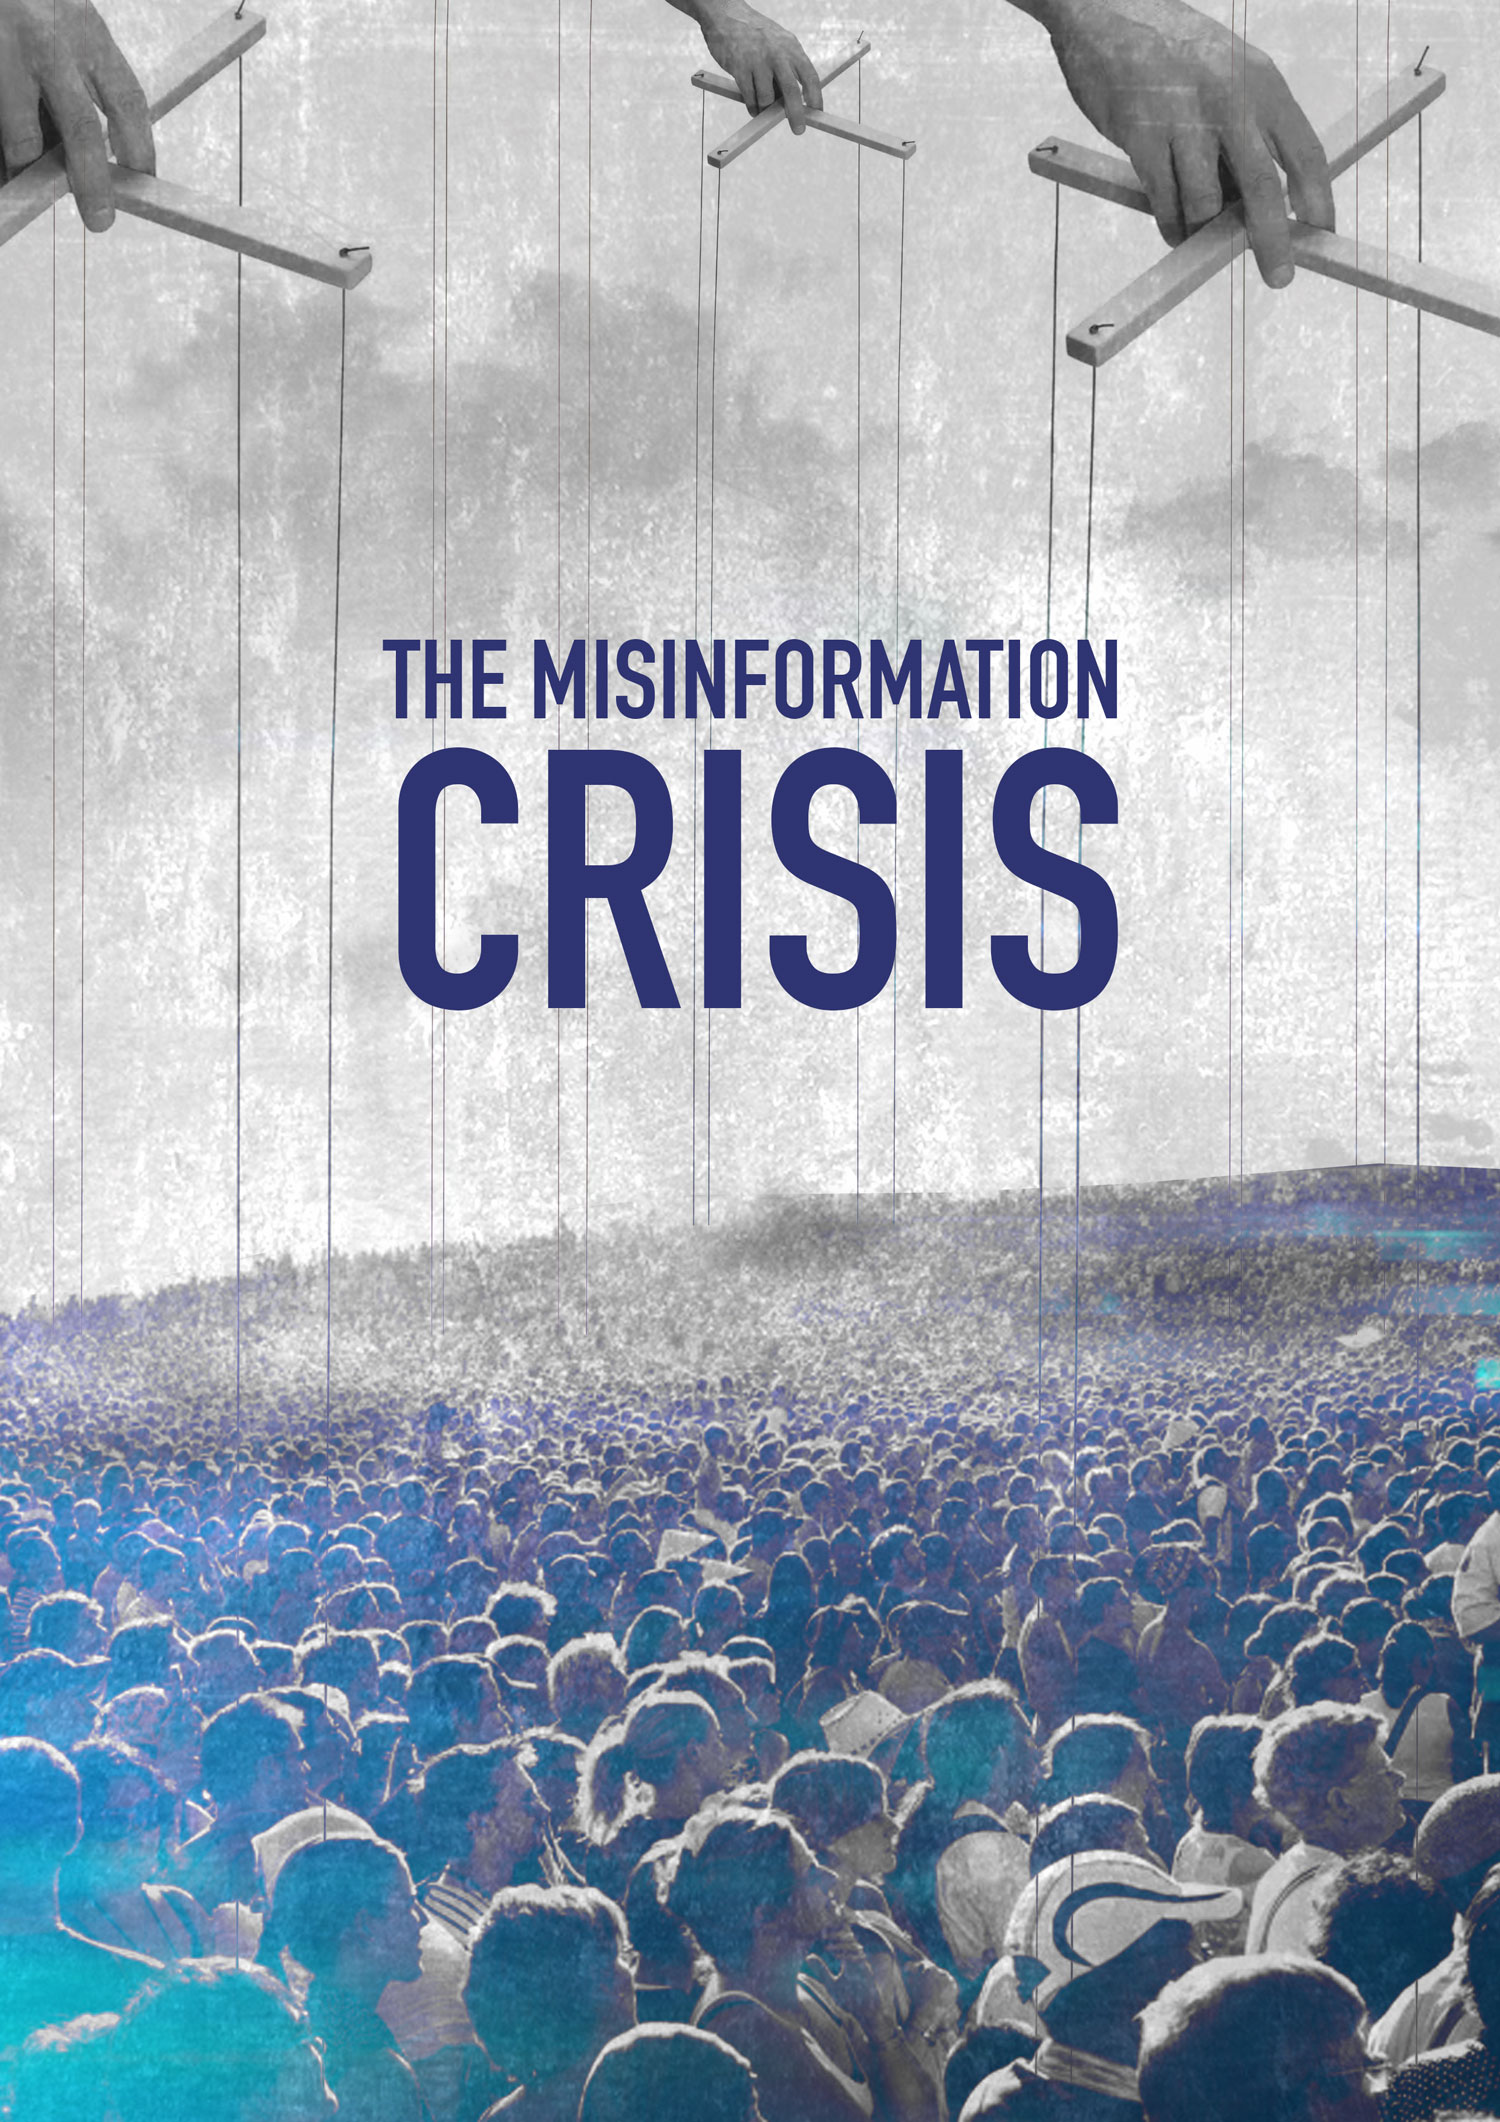 The misinformation crisis | The World Weekly